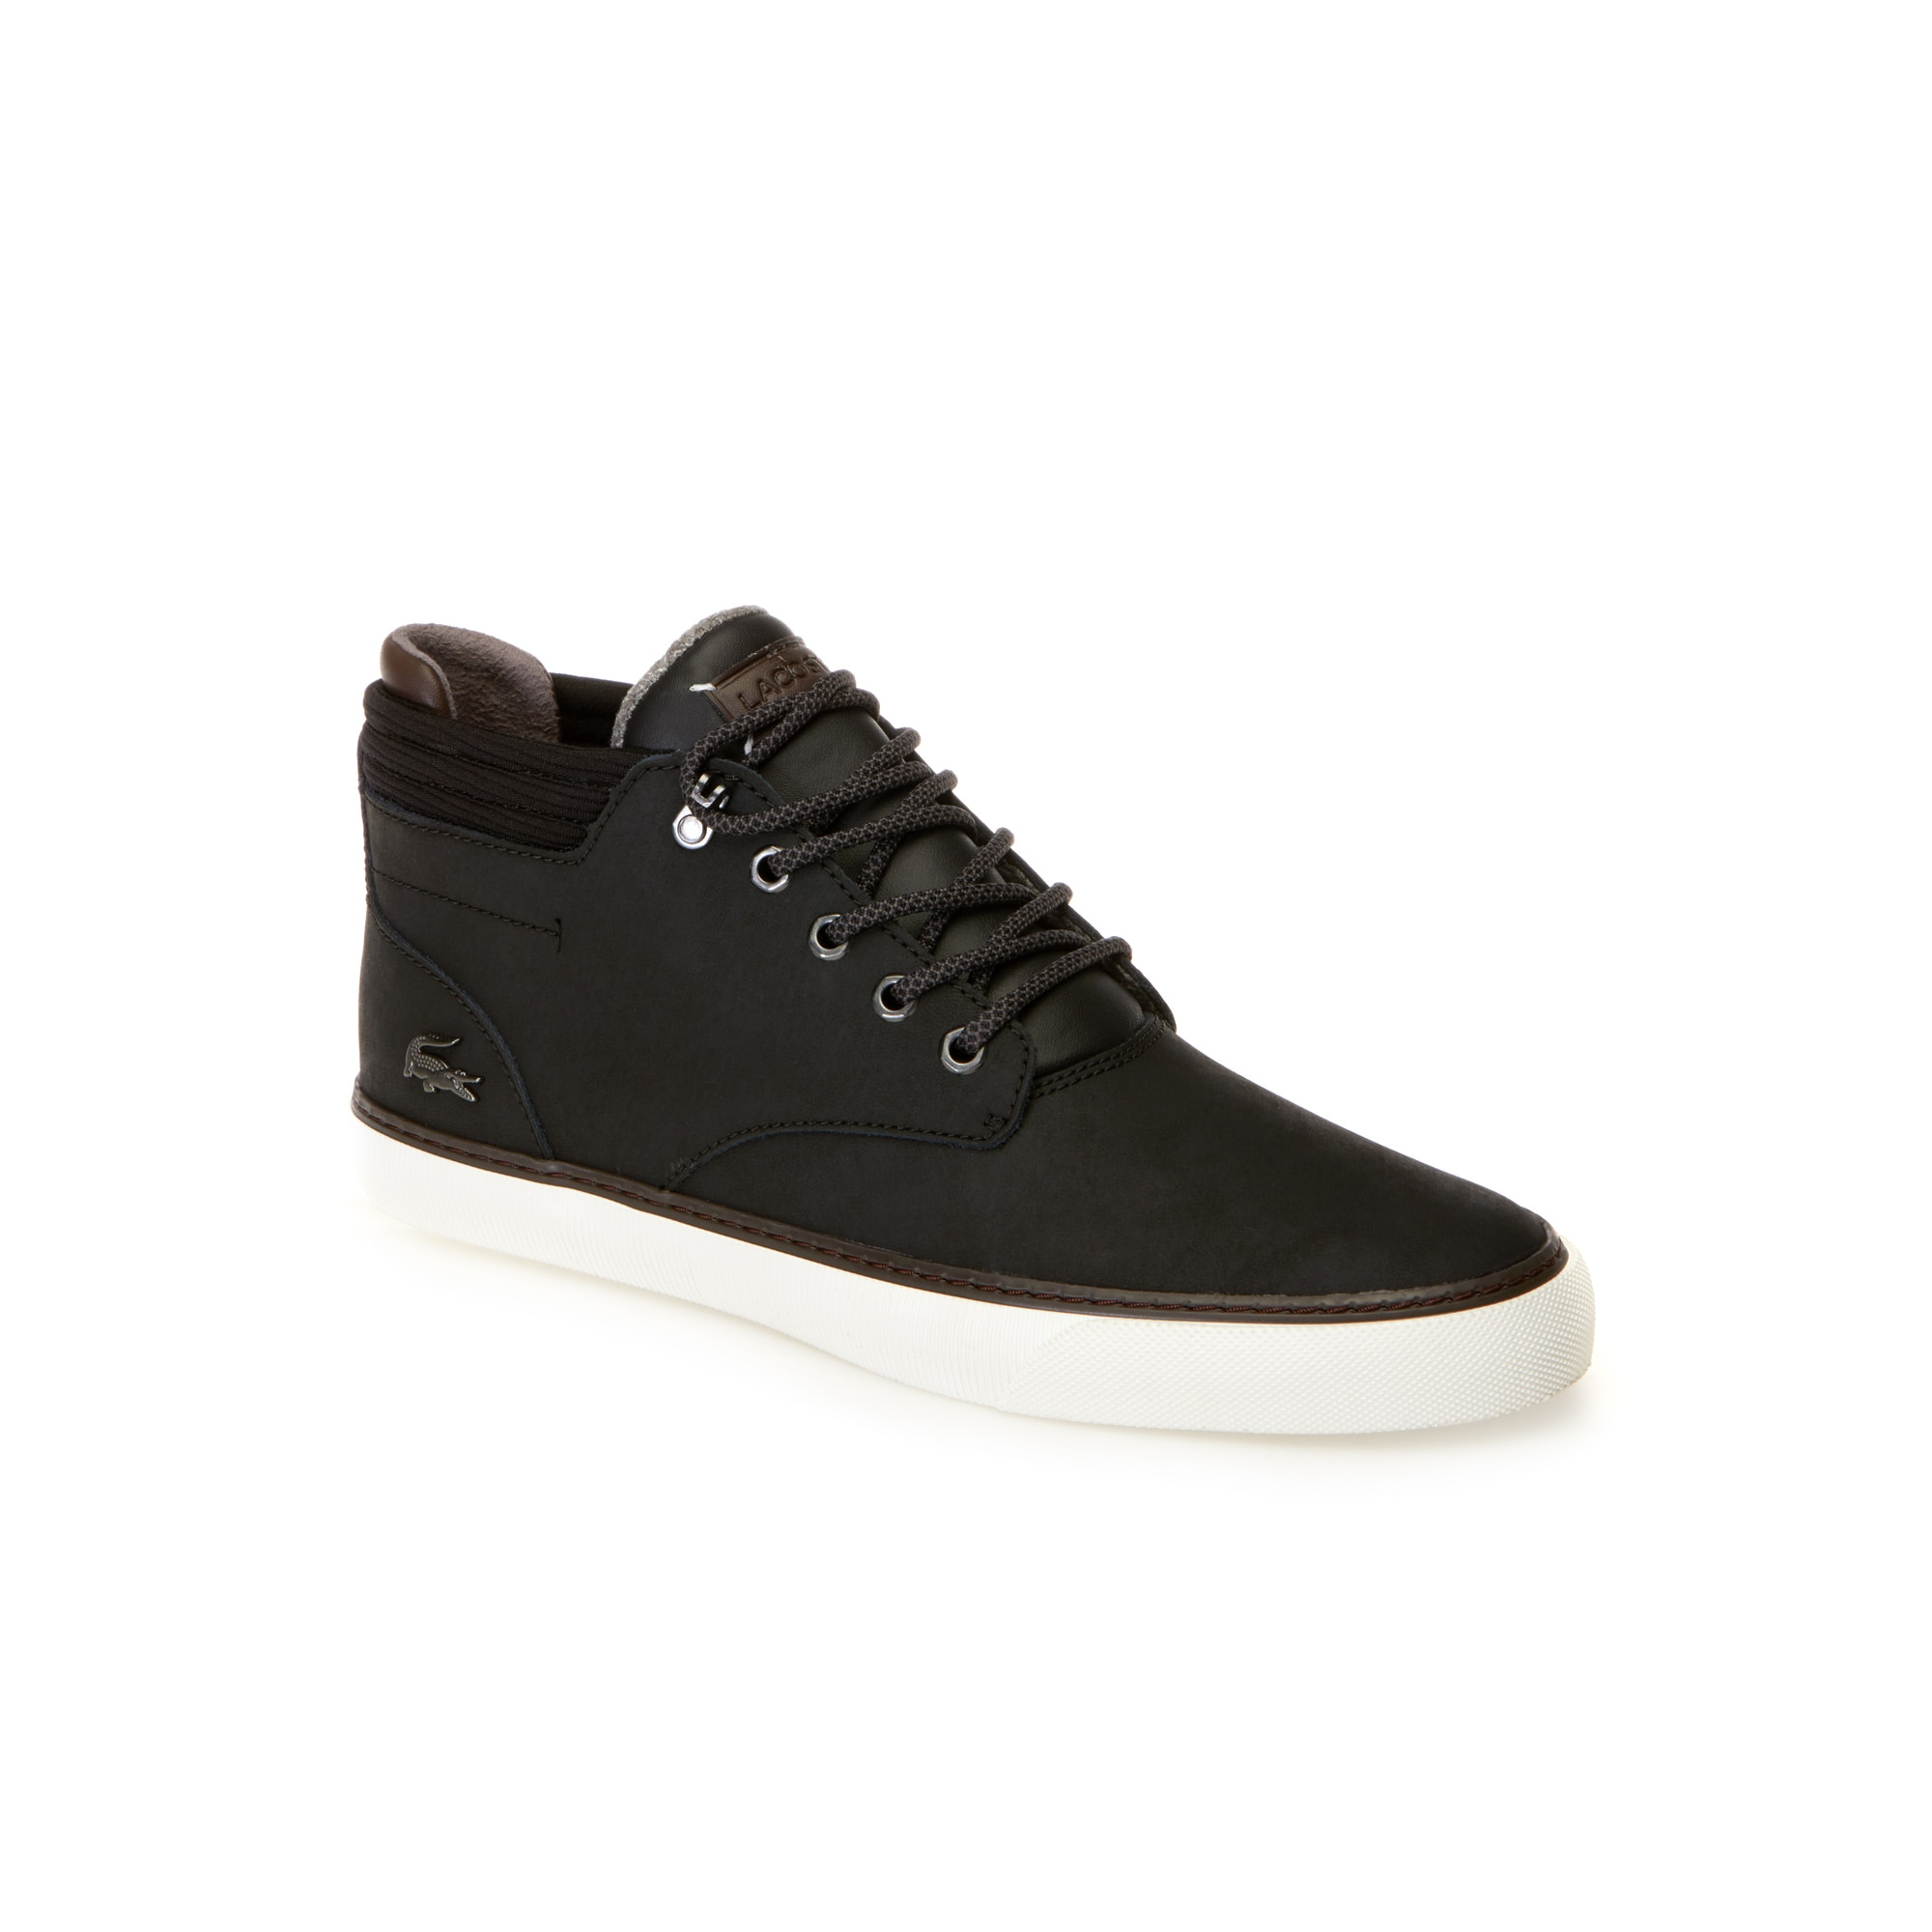 8d4babd46 Men s Esparre Winter High-top Leather Trainers